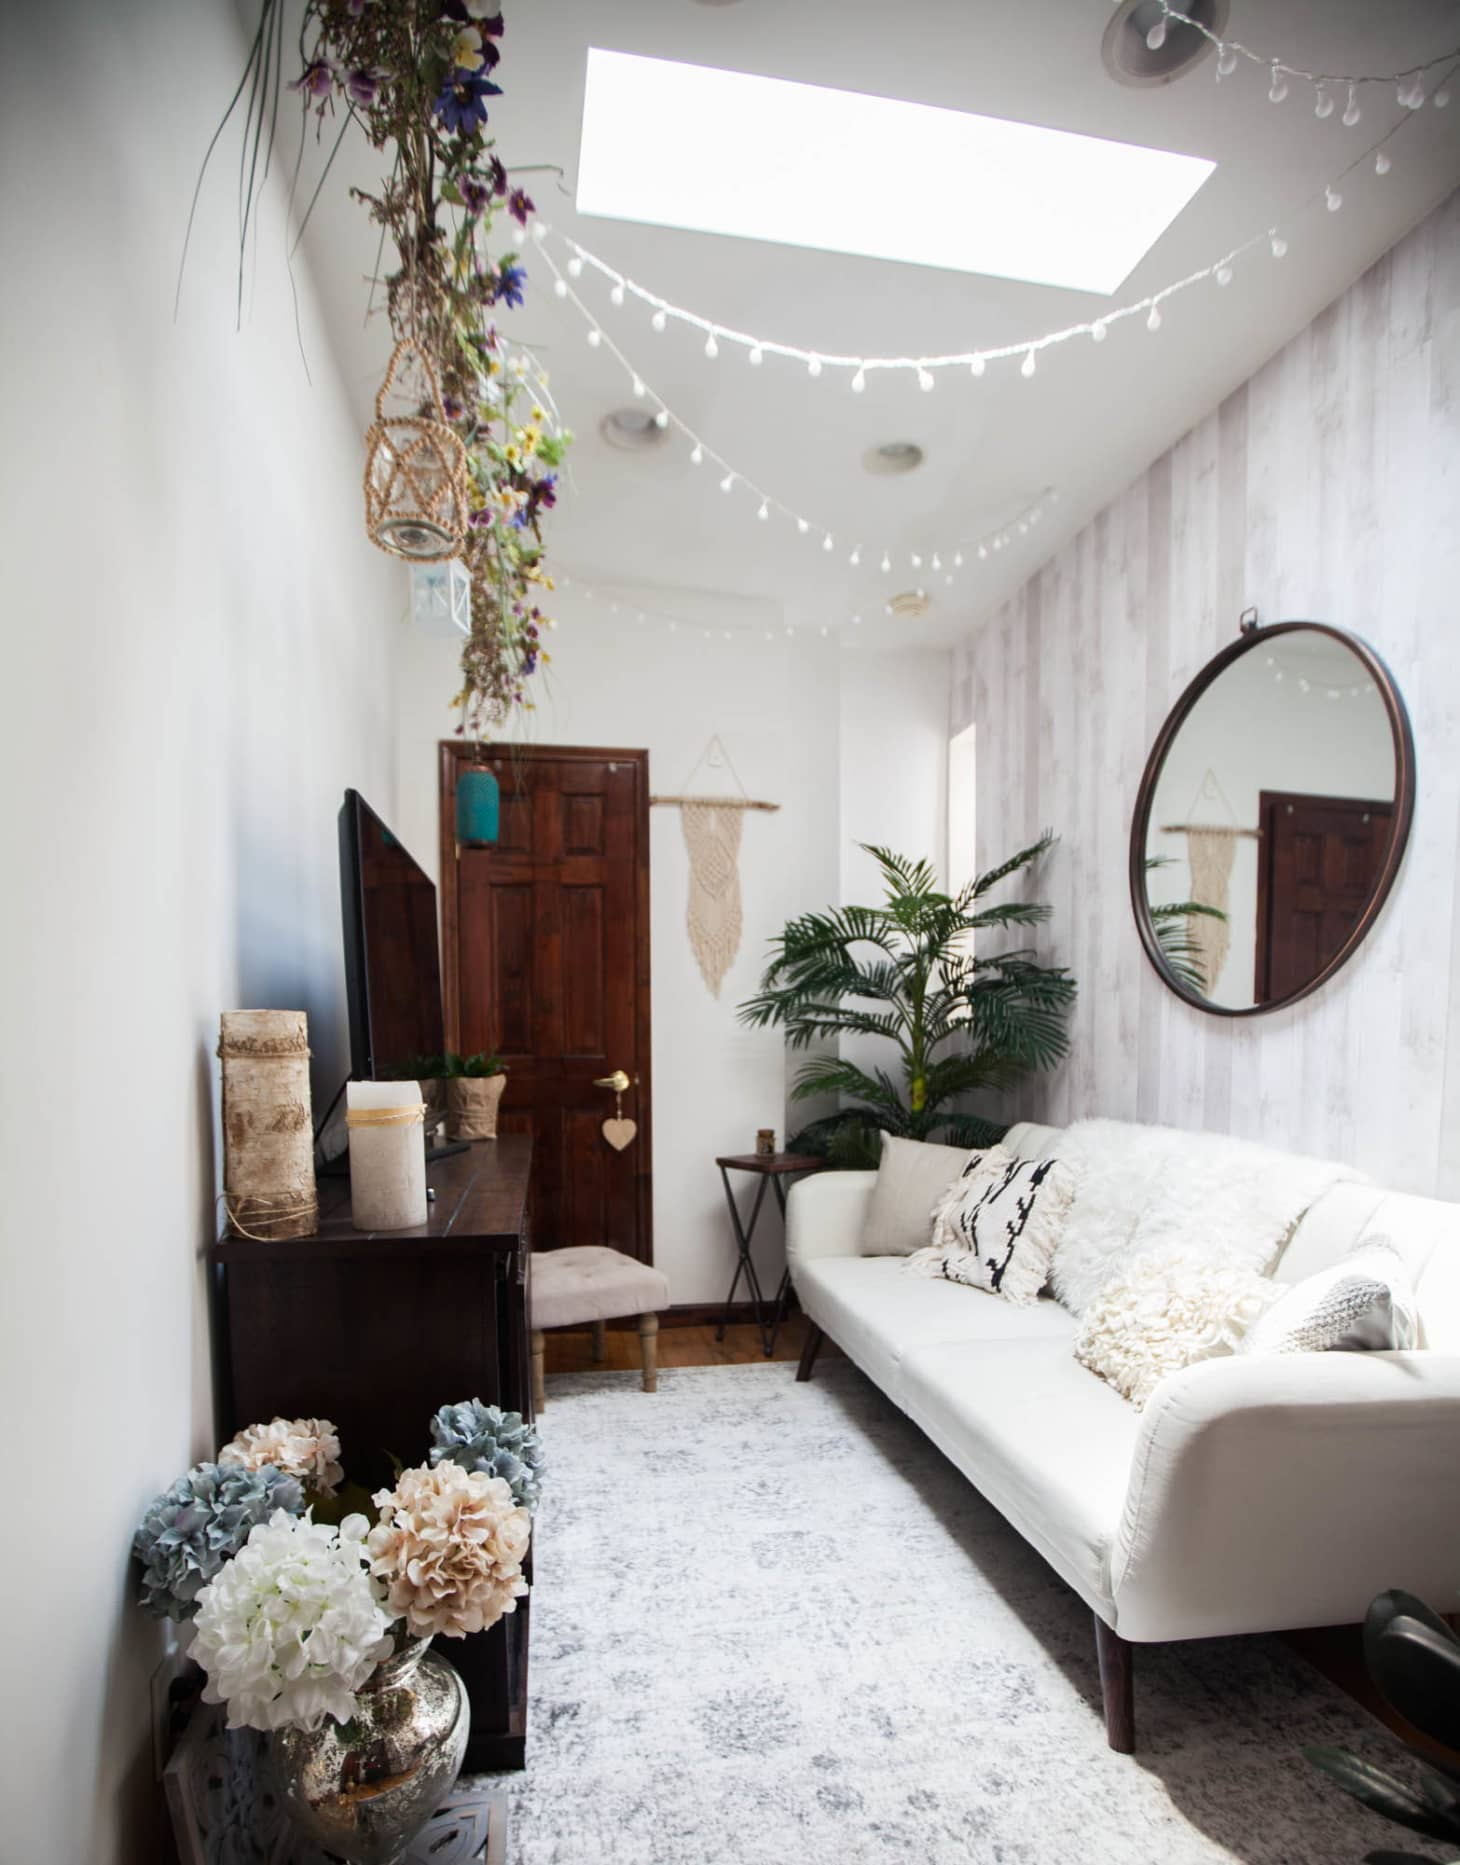 30 Small Living Room Decorating Design Ideas How To Decorate A